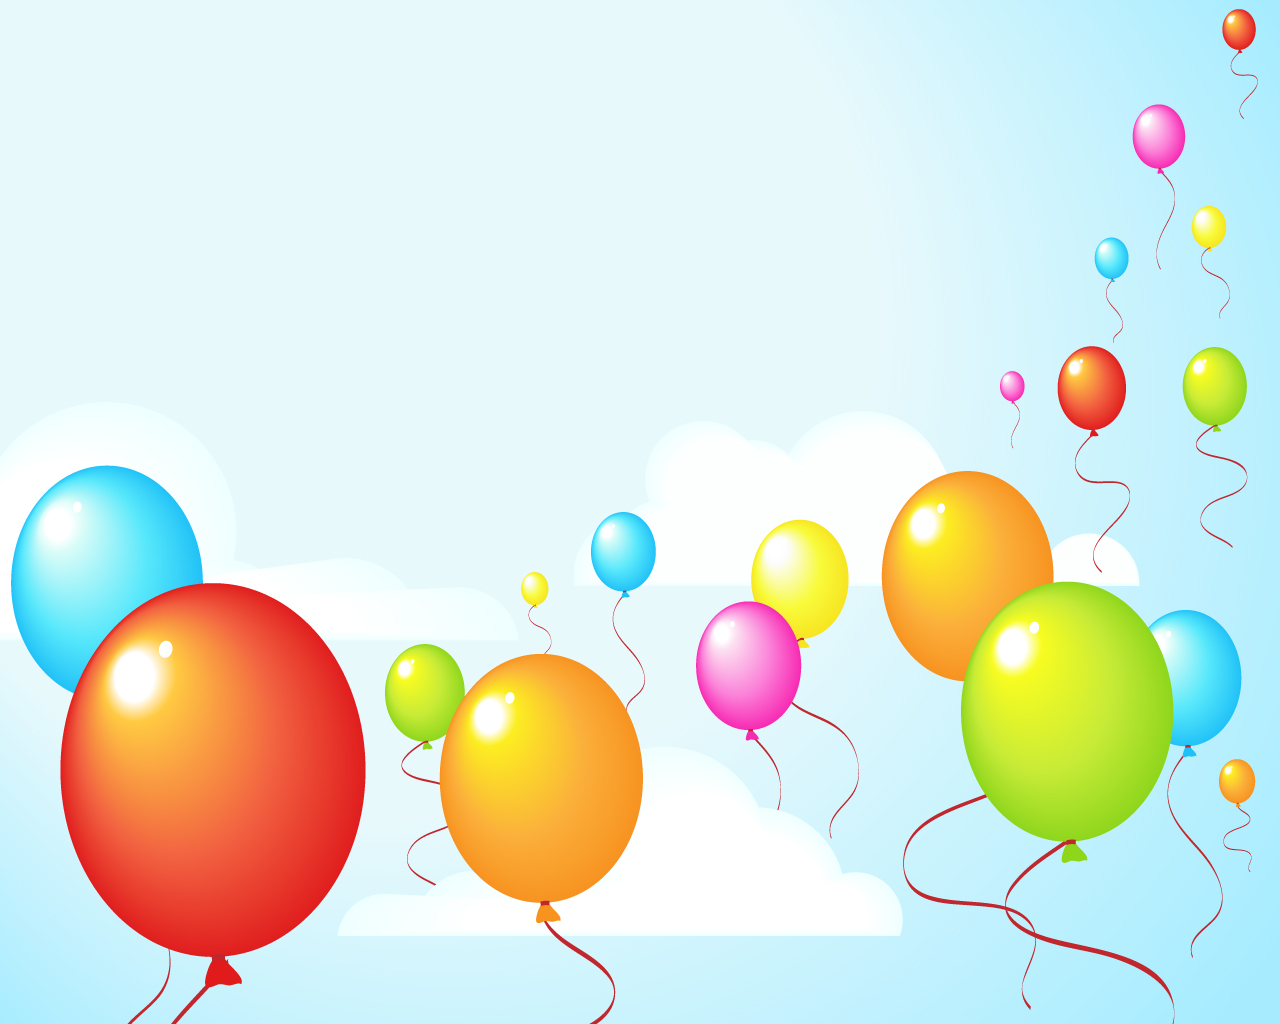 Free Balloon Wallpaper 19617 2560x1600 px